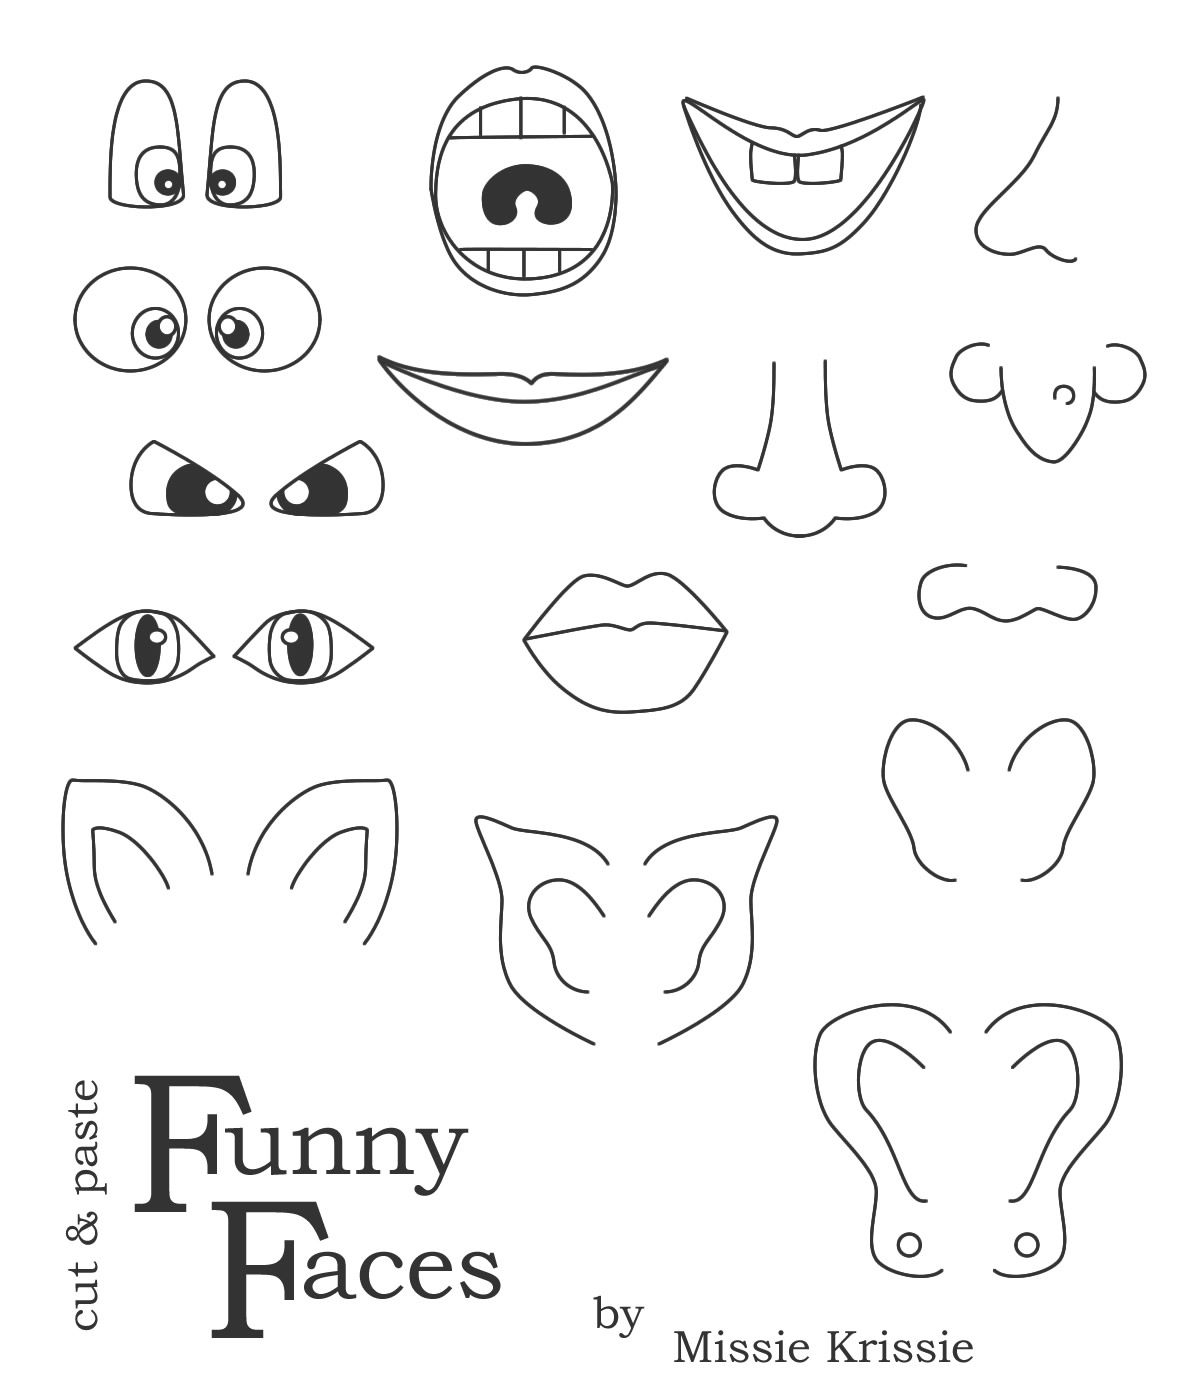 Printable Funny Face Images